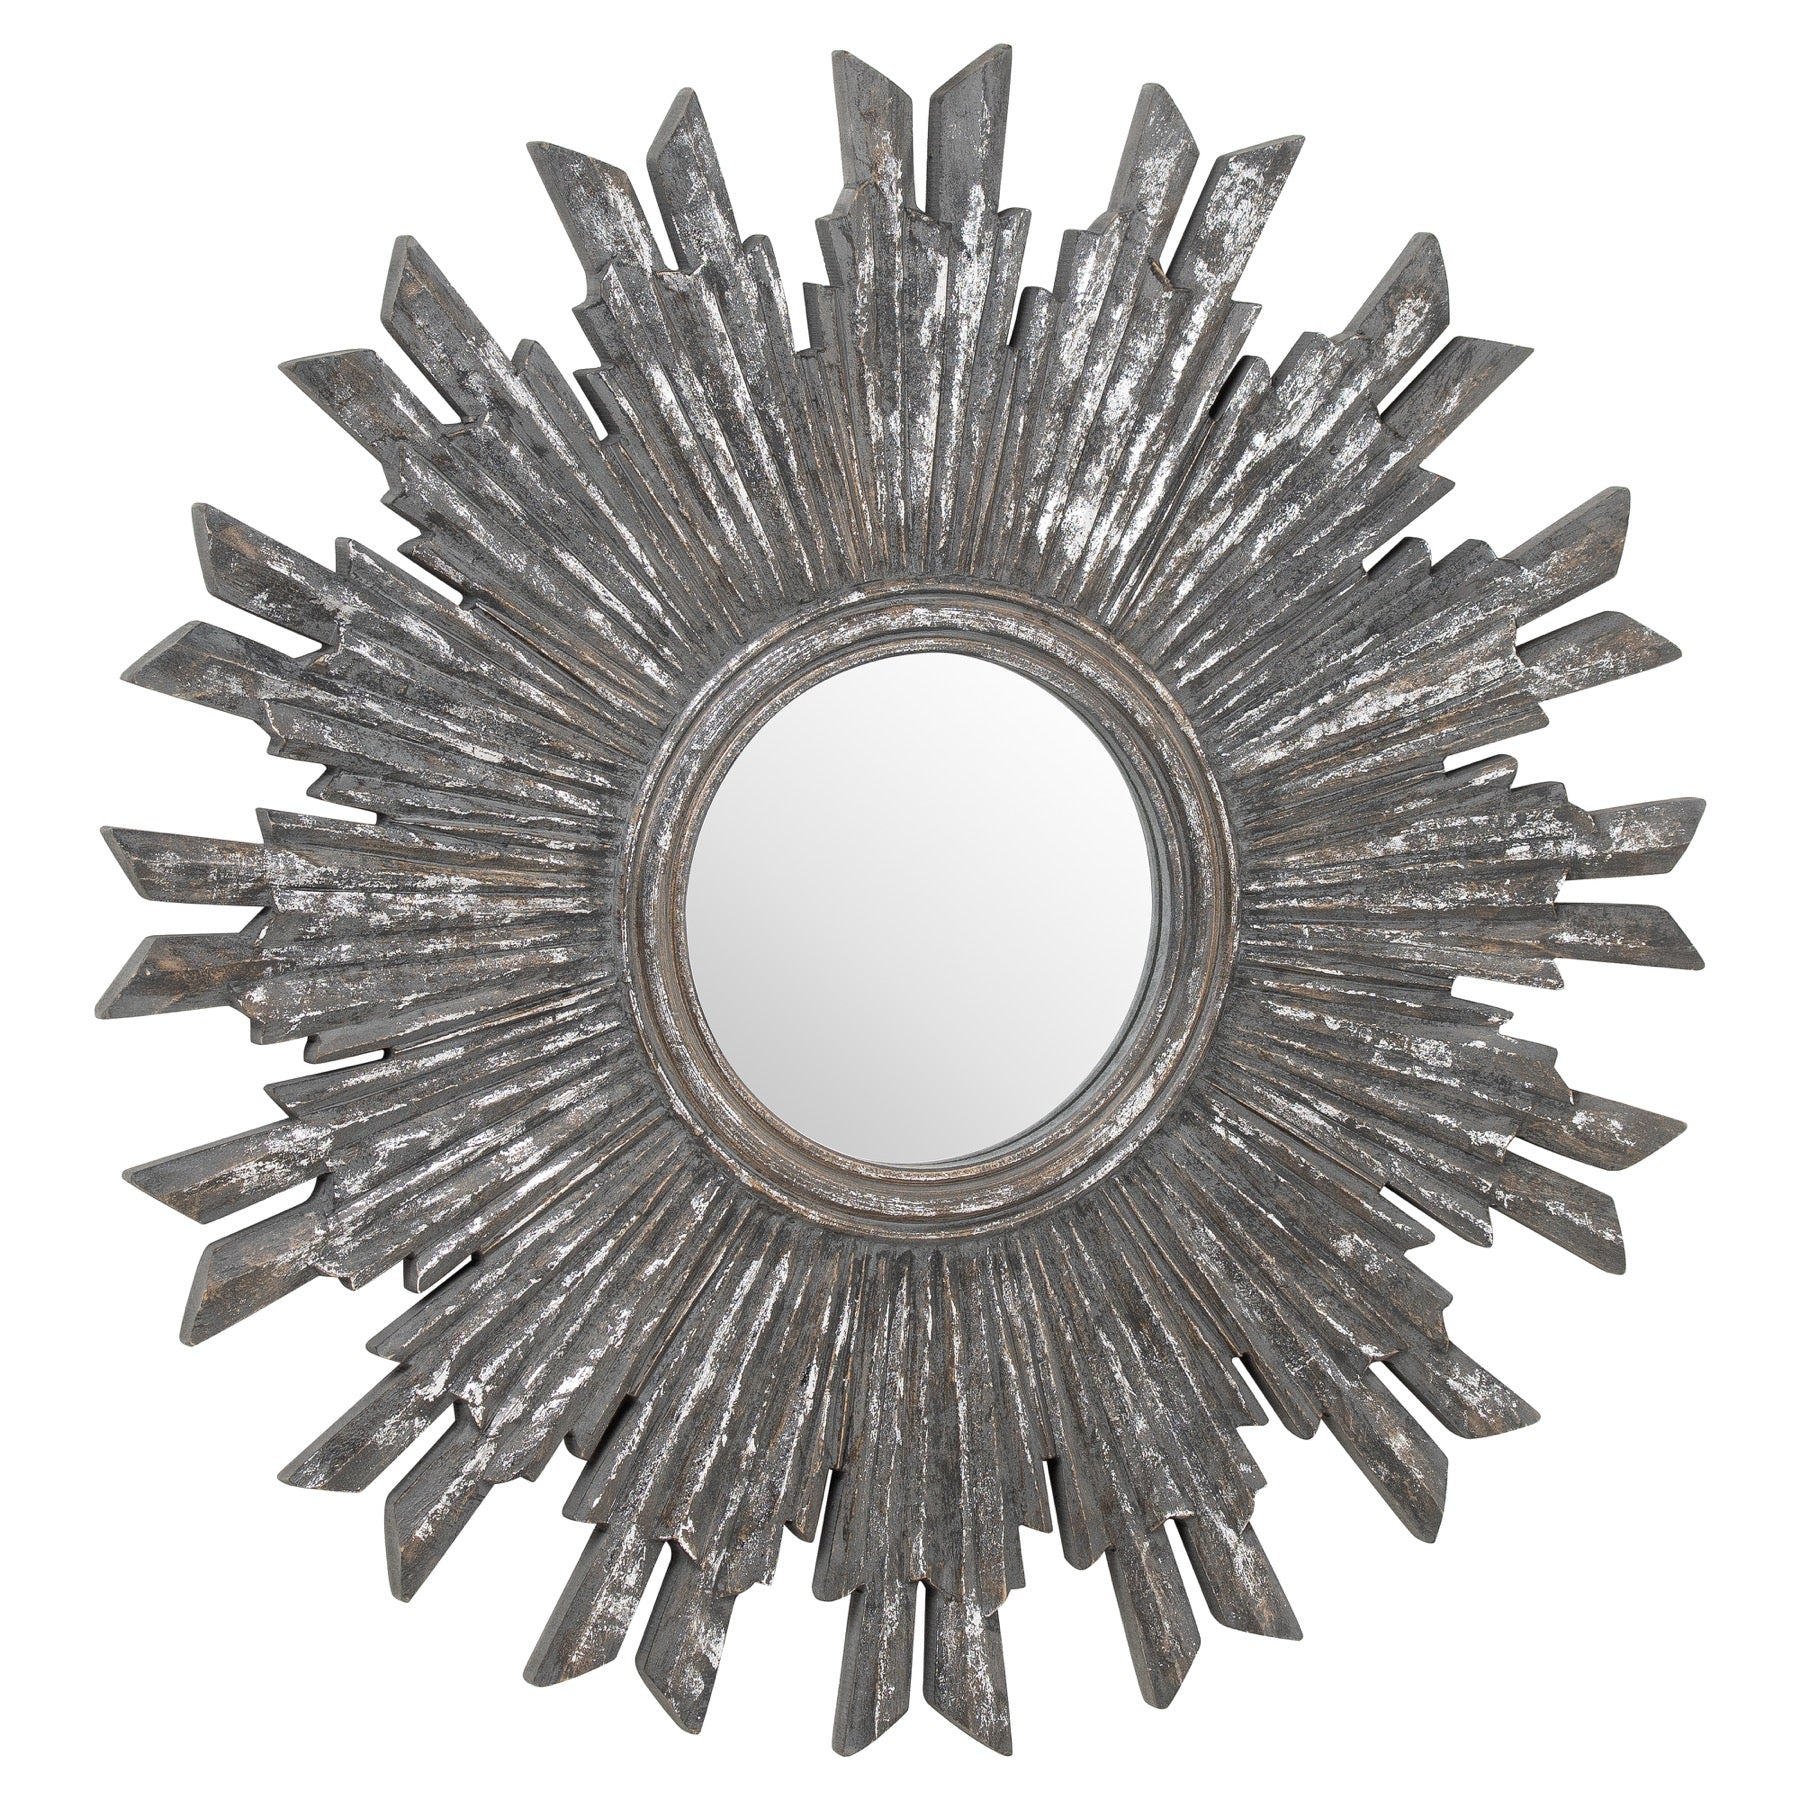 Circular Antique Matalic Burst Mirror